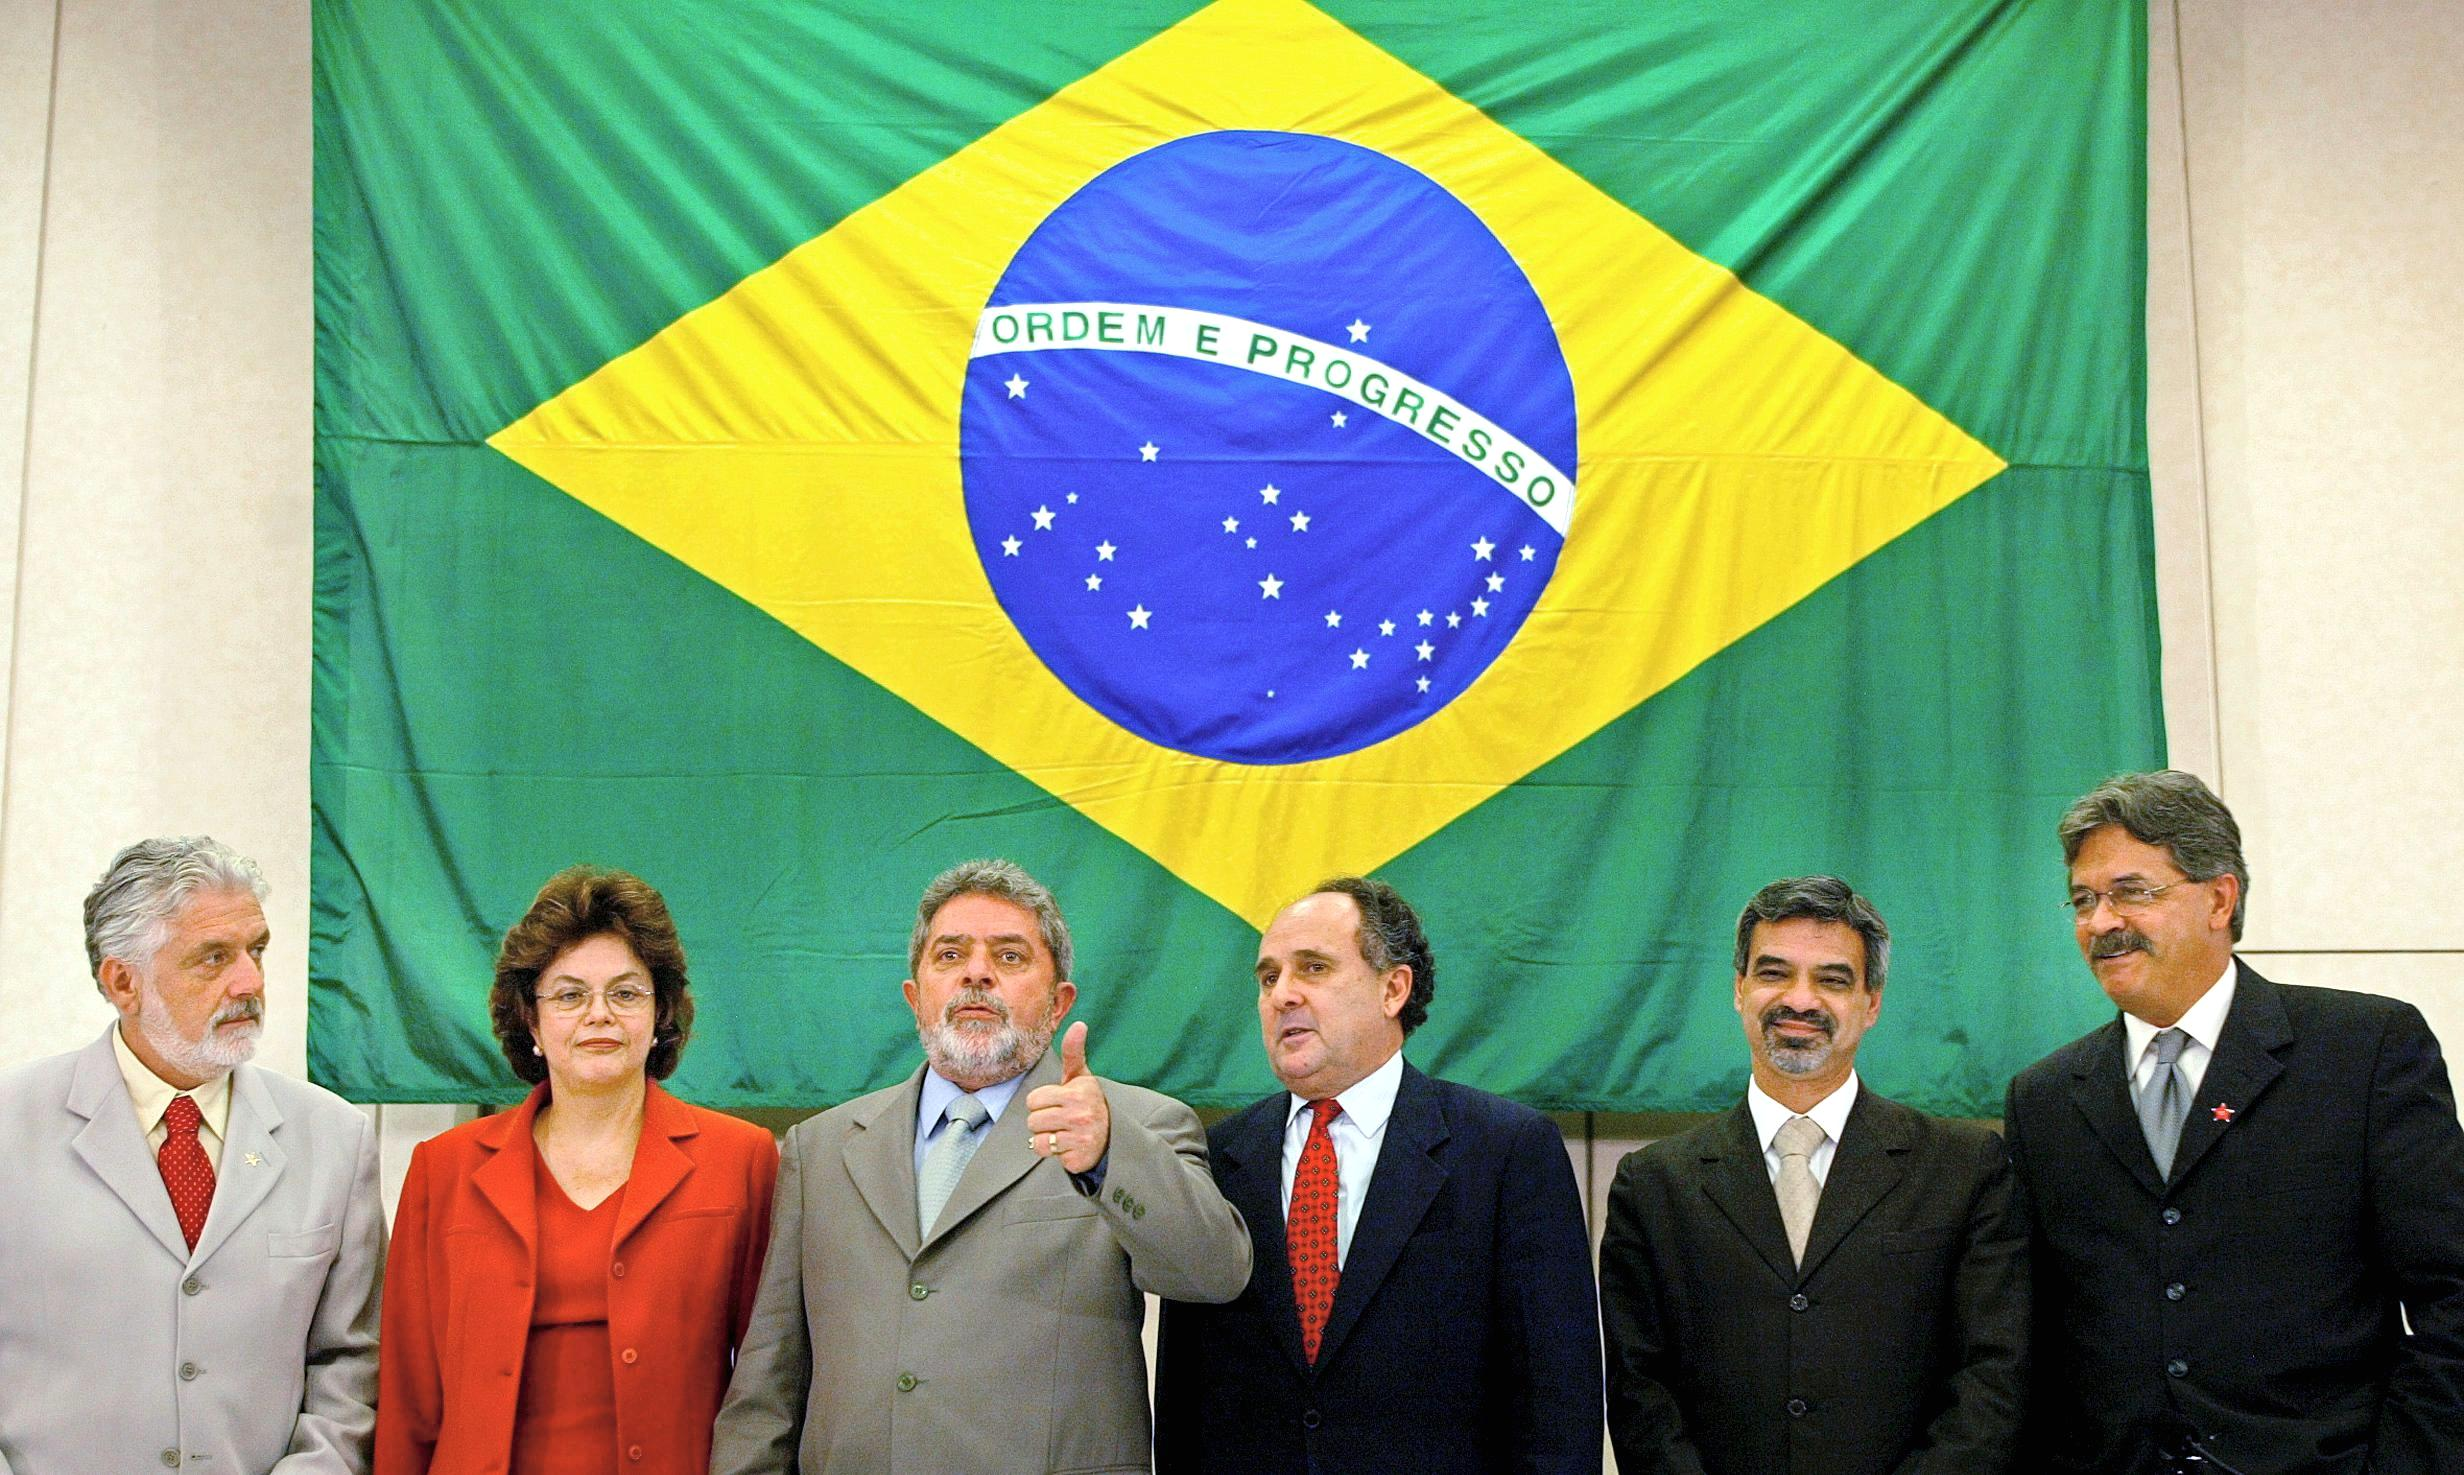 Luiz Inacio Lula da Silva (3rd L), president-elect of Brazil, gives the thumbs-up 20 December, 2002 in Sao Paulo, Brazil, as he presents his ministers (from L-R): Minister of work Jacques Wagner, Energy minister Dilma Rousseff, Education minister Cristovao Buarque, Health minister Humberto Costa and national secretary of Human Rights Nilmario Miranda. AFP PHOTO/Mauricio LIMA (Photo credit should read MAURICIO LIMA/AFP via Getty Images)